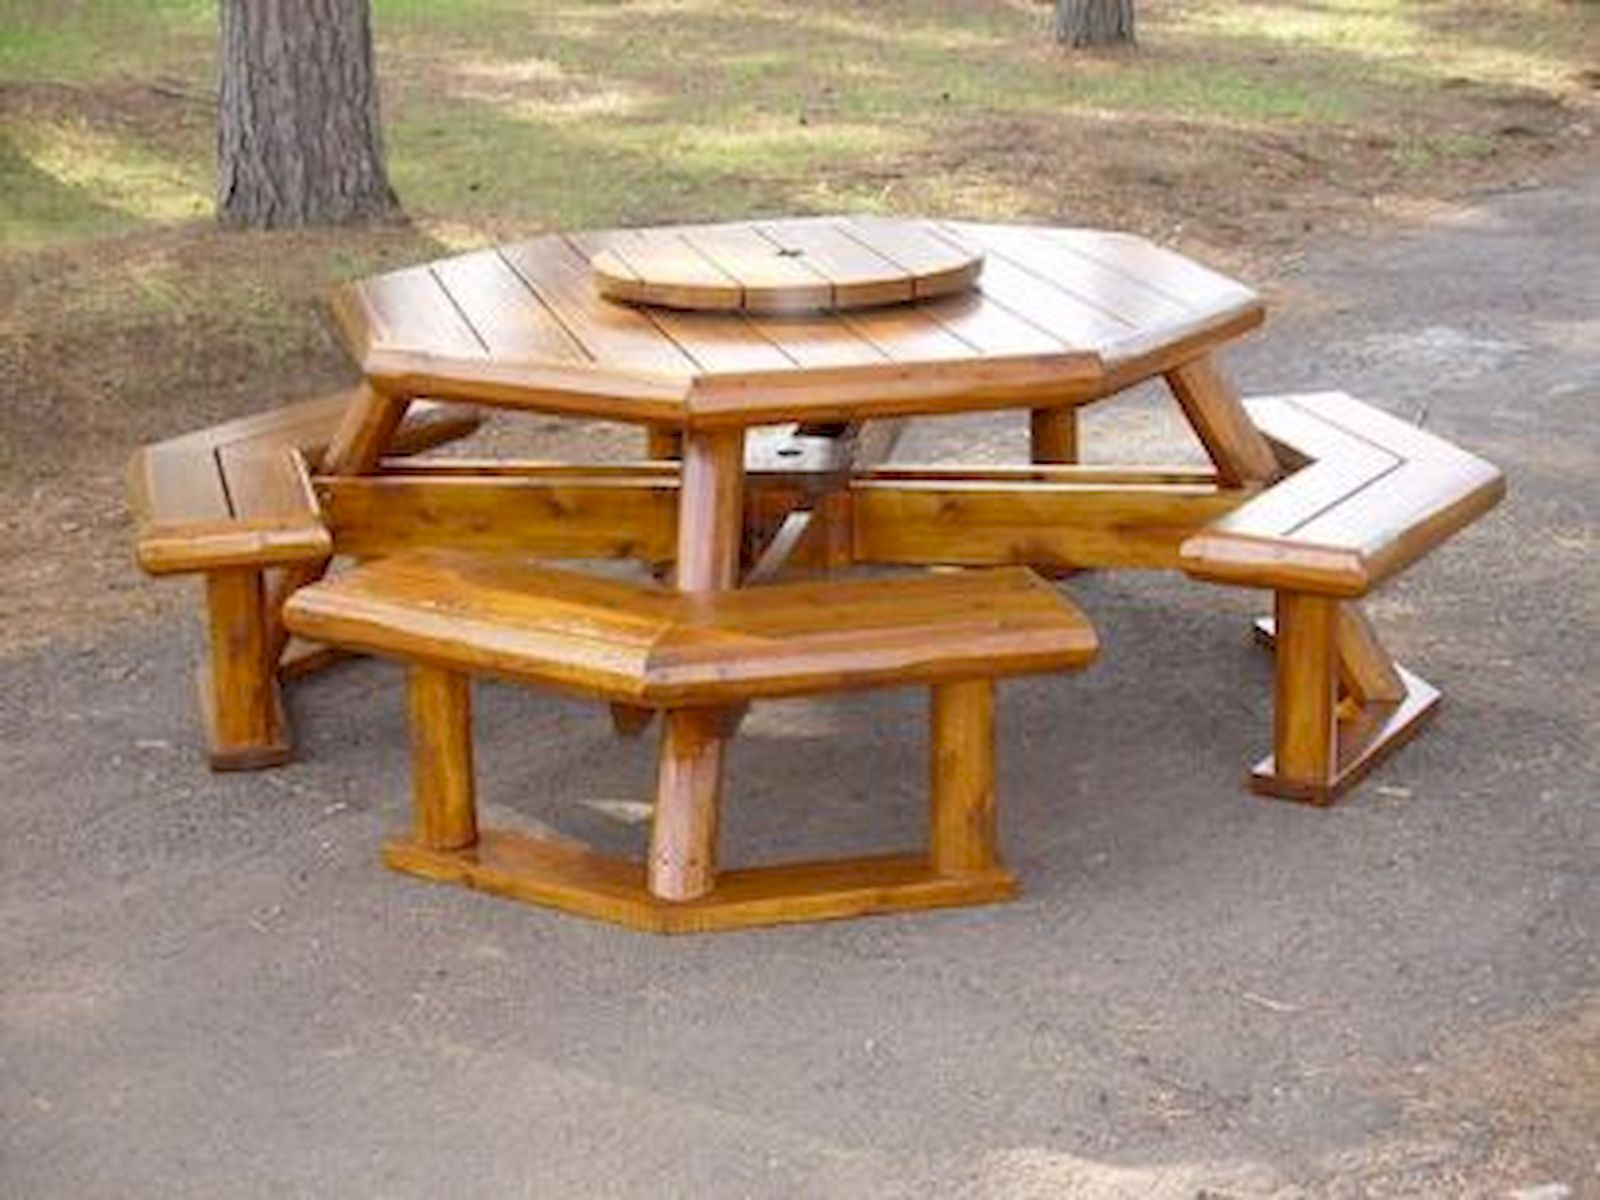 50 Amazing DIY Projects Outdoor Furniture Design Ideas (17)